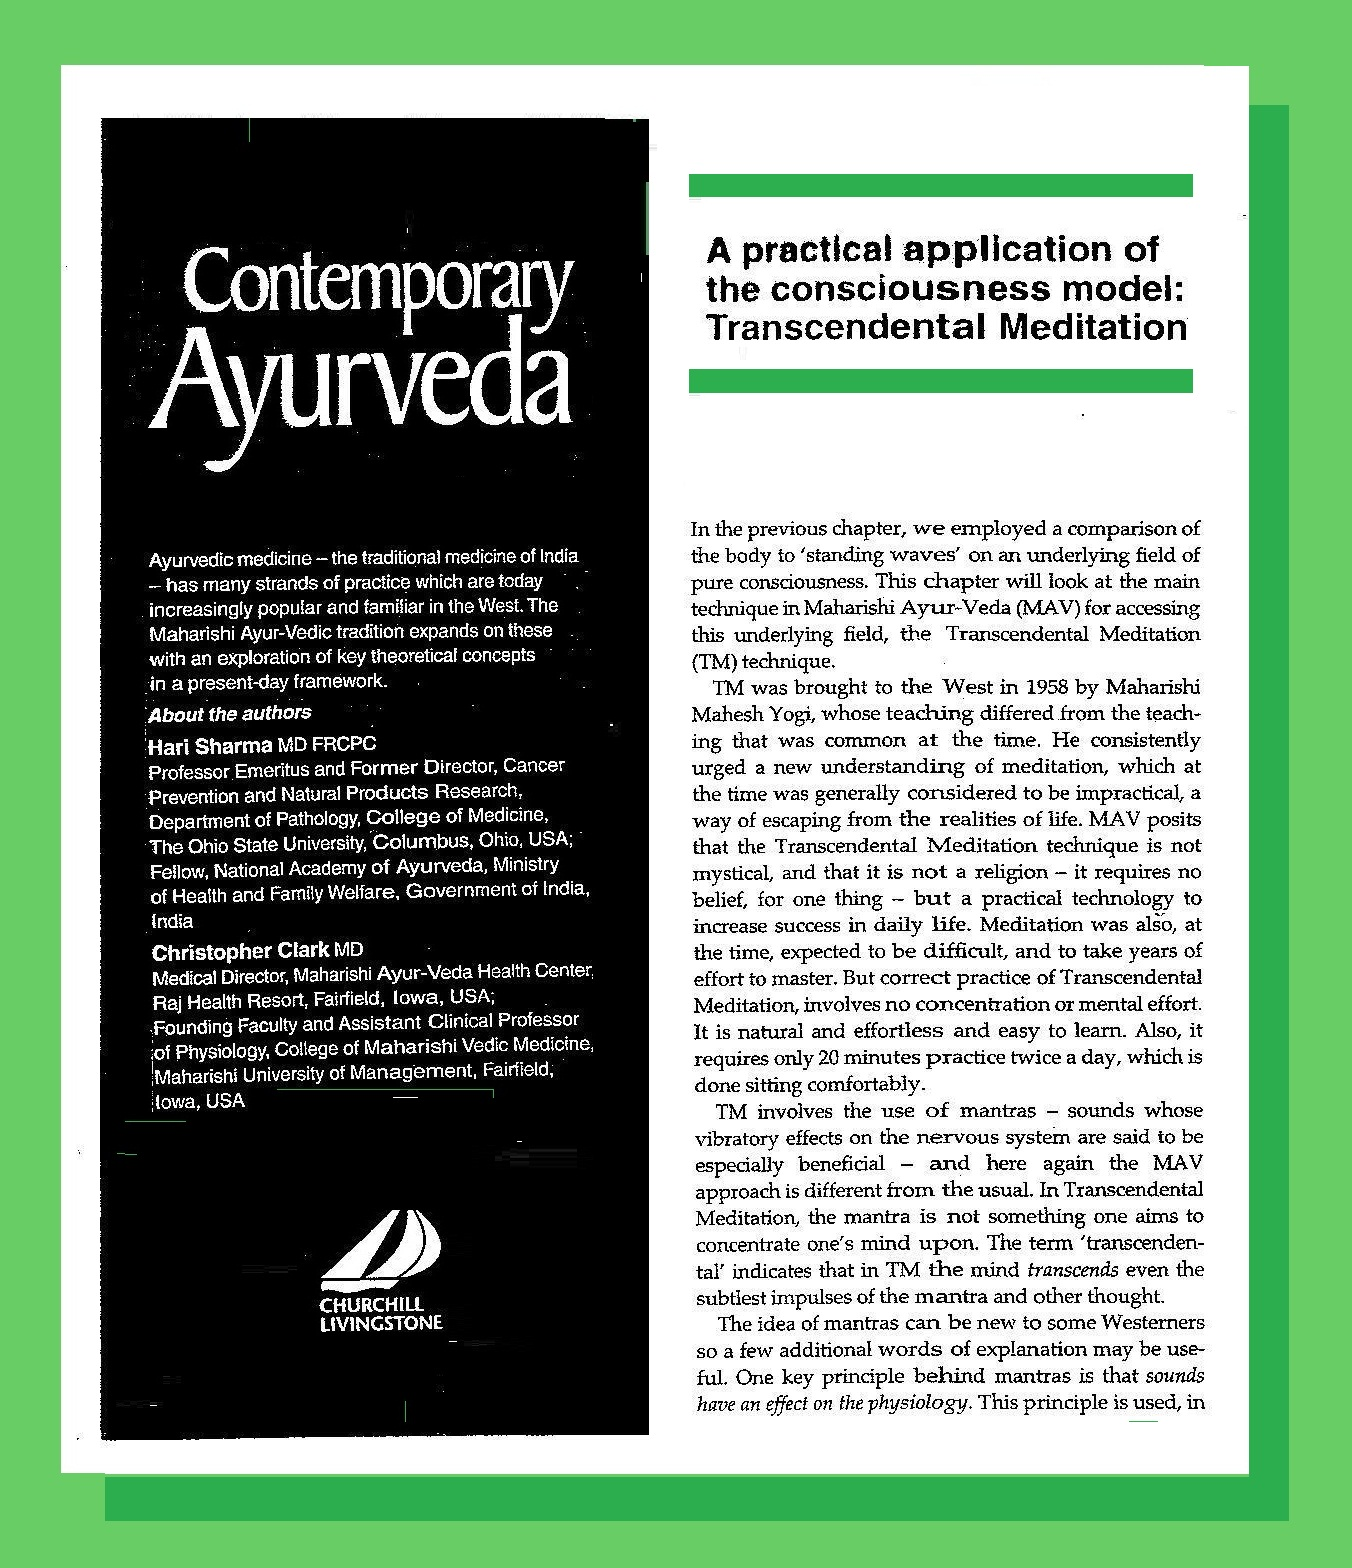 Contemporary_Ayurveda.jpg